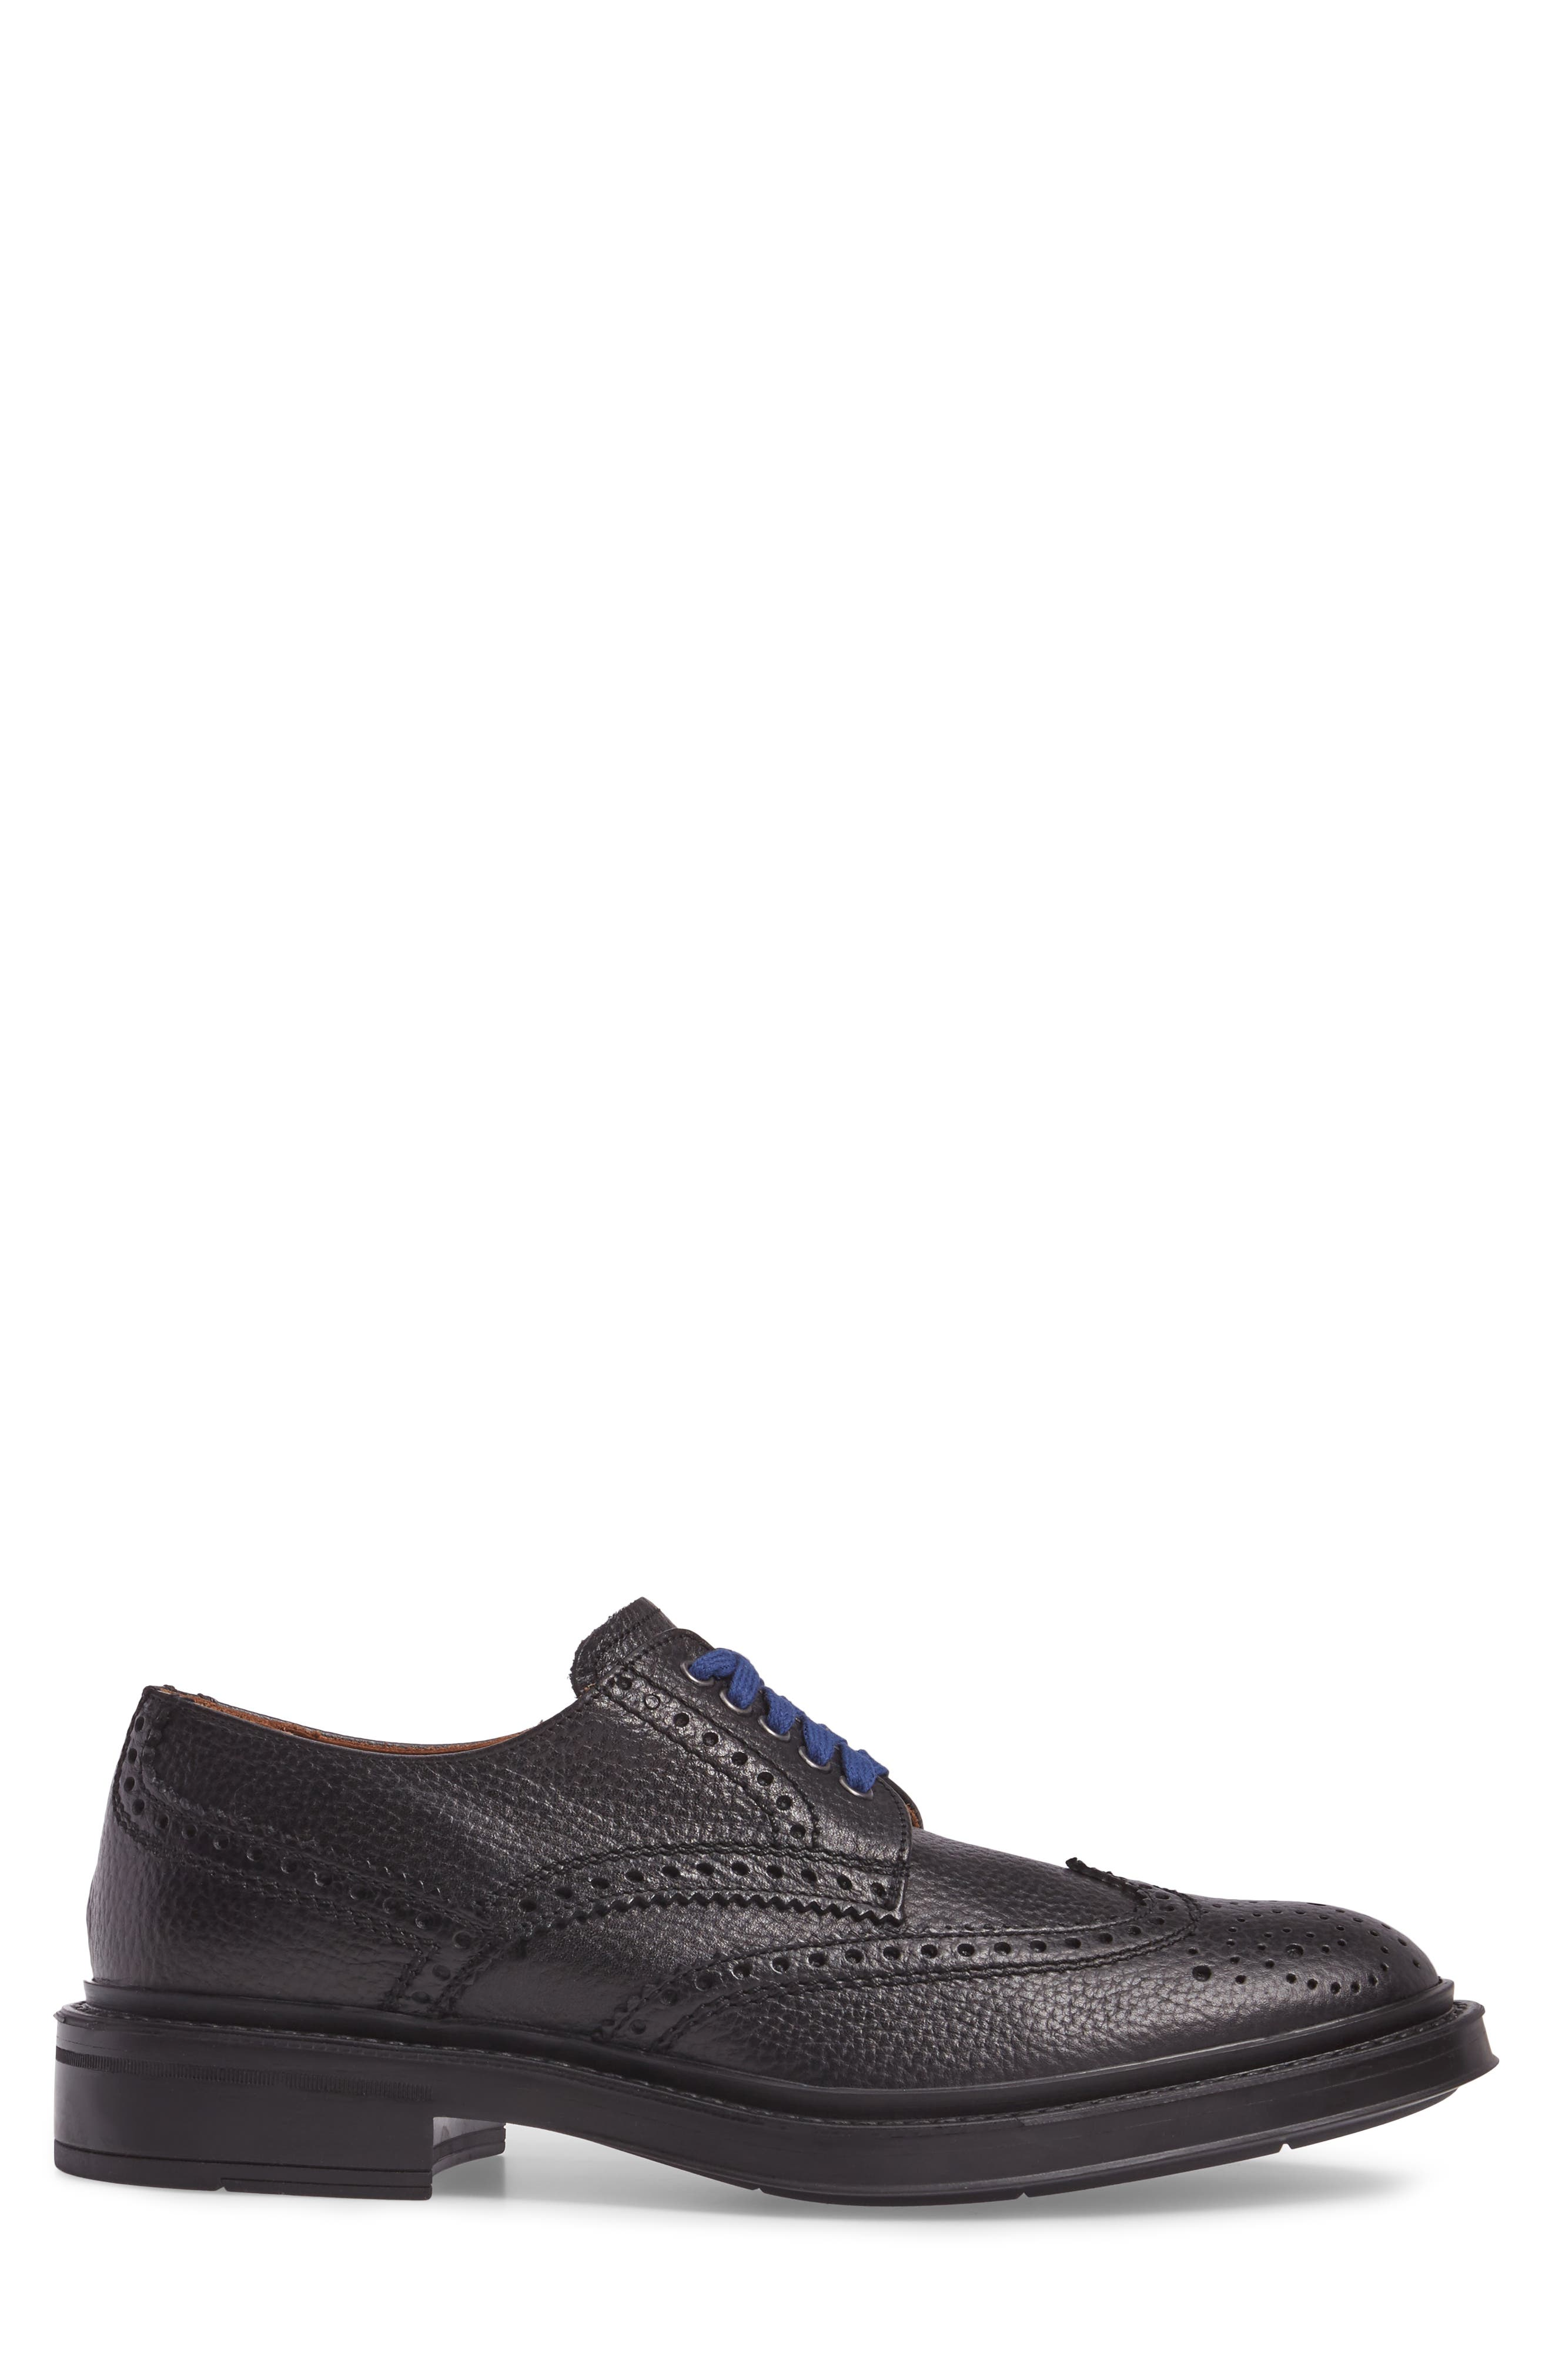 Landon Weatherproof Wingtip,                             Alternate thumbnail 3, color,                             Black